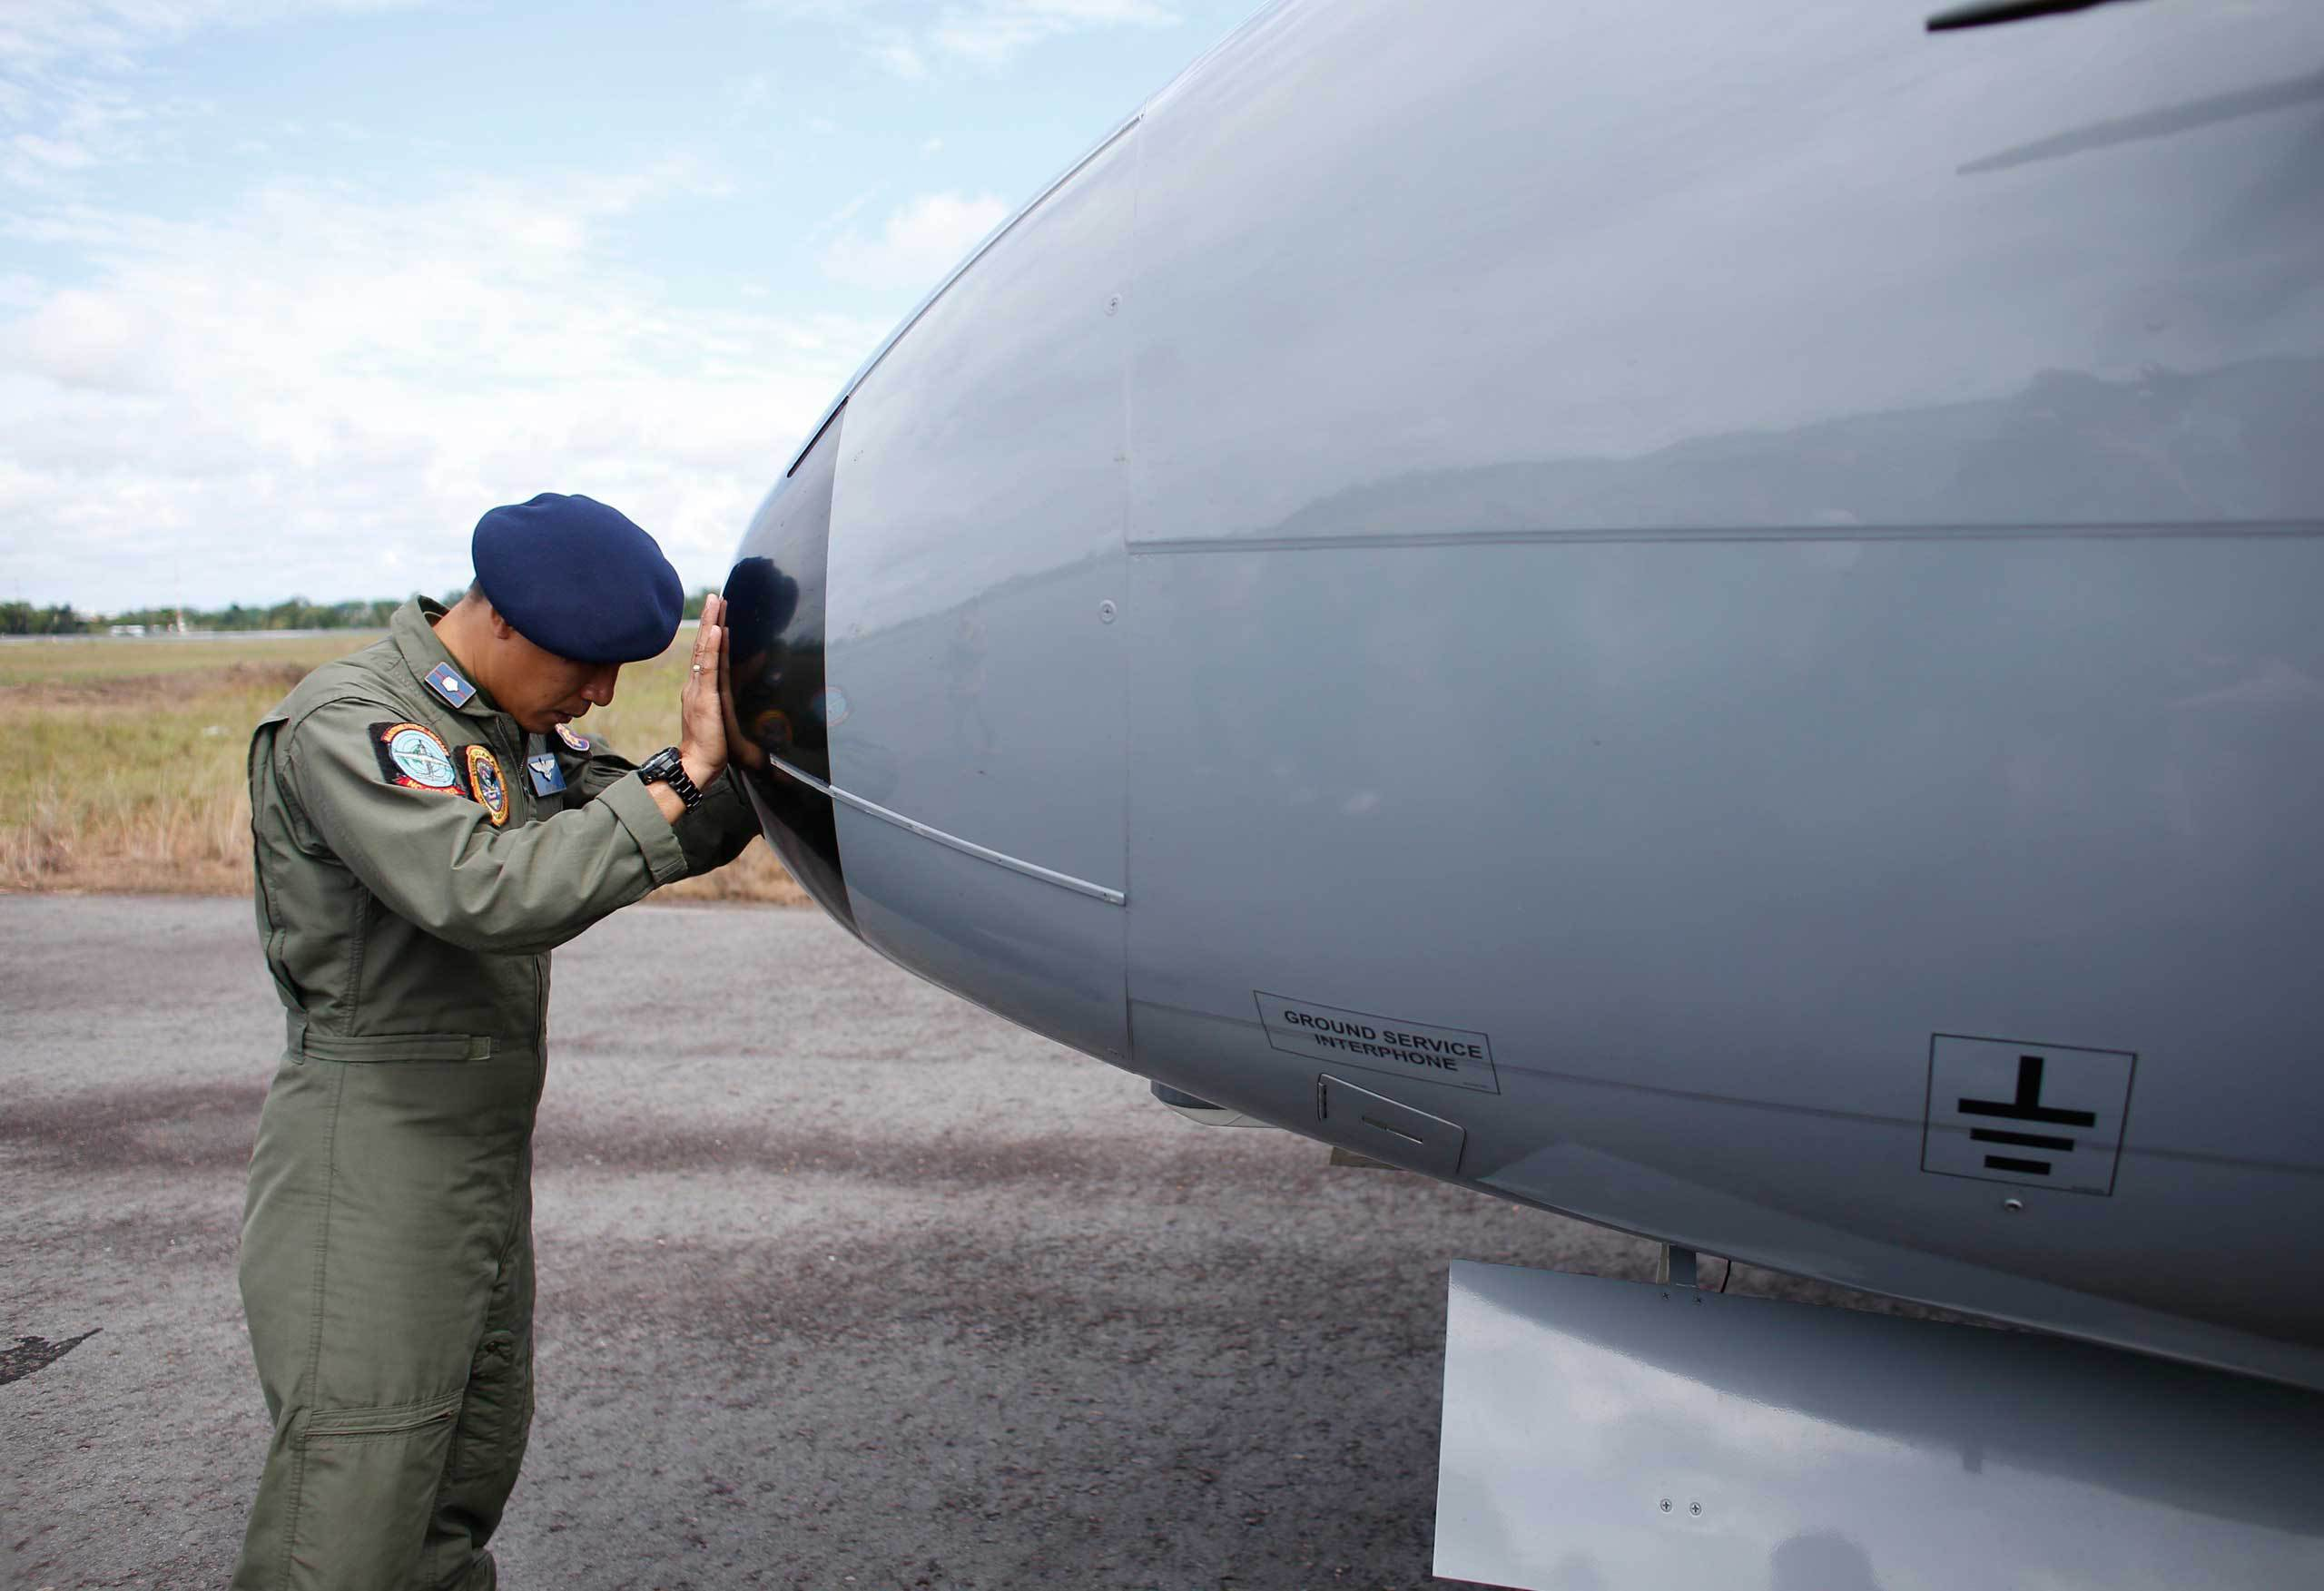 A crew member of an Indonesian Maritime Surveillance plane says a prayer before a search mission to look for AirAsia's Flight QZ8501 in Pangkal Pinang, Bangka Island, Indonesia on Dec. 30, 2014.